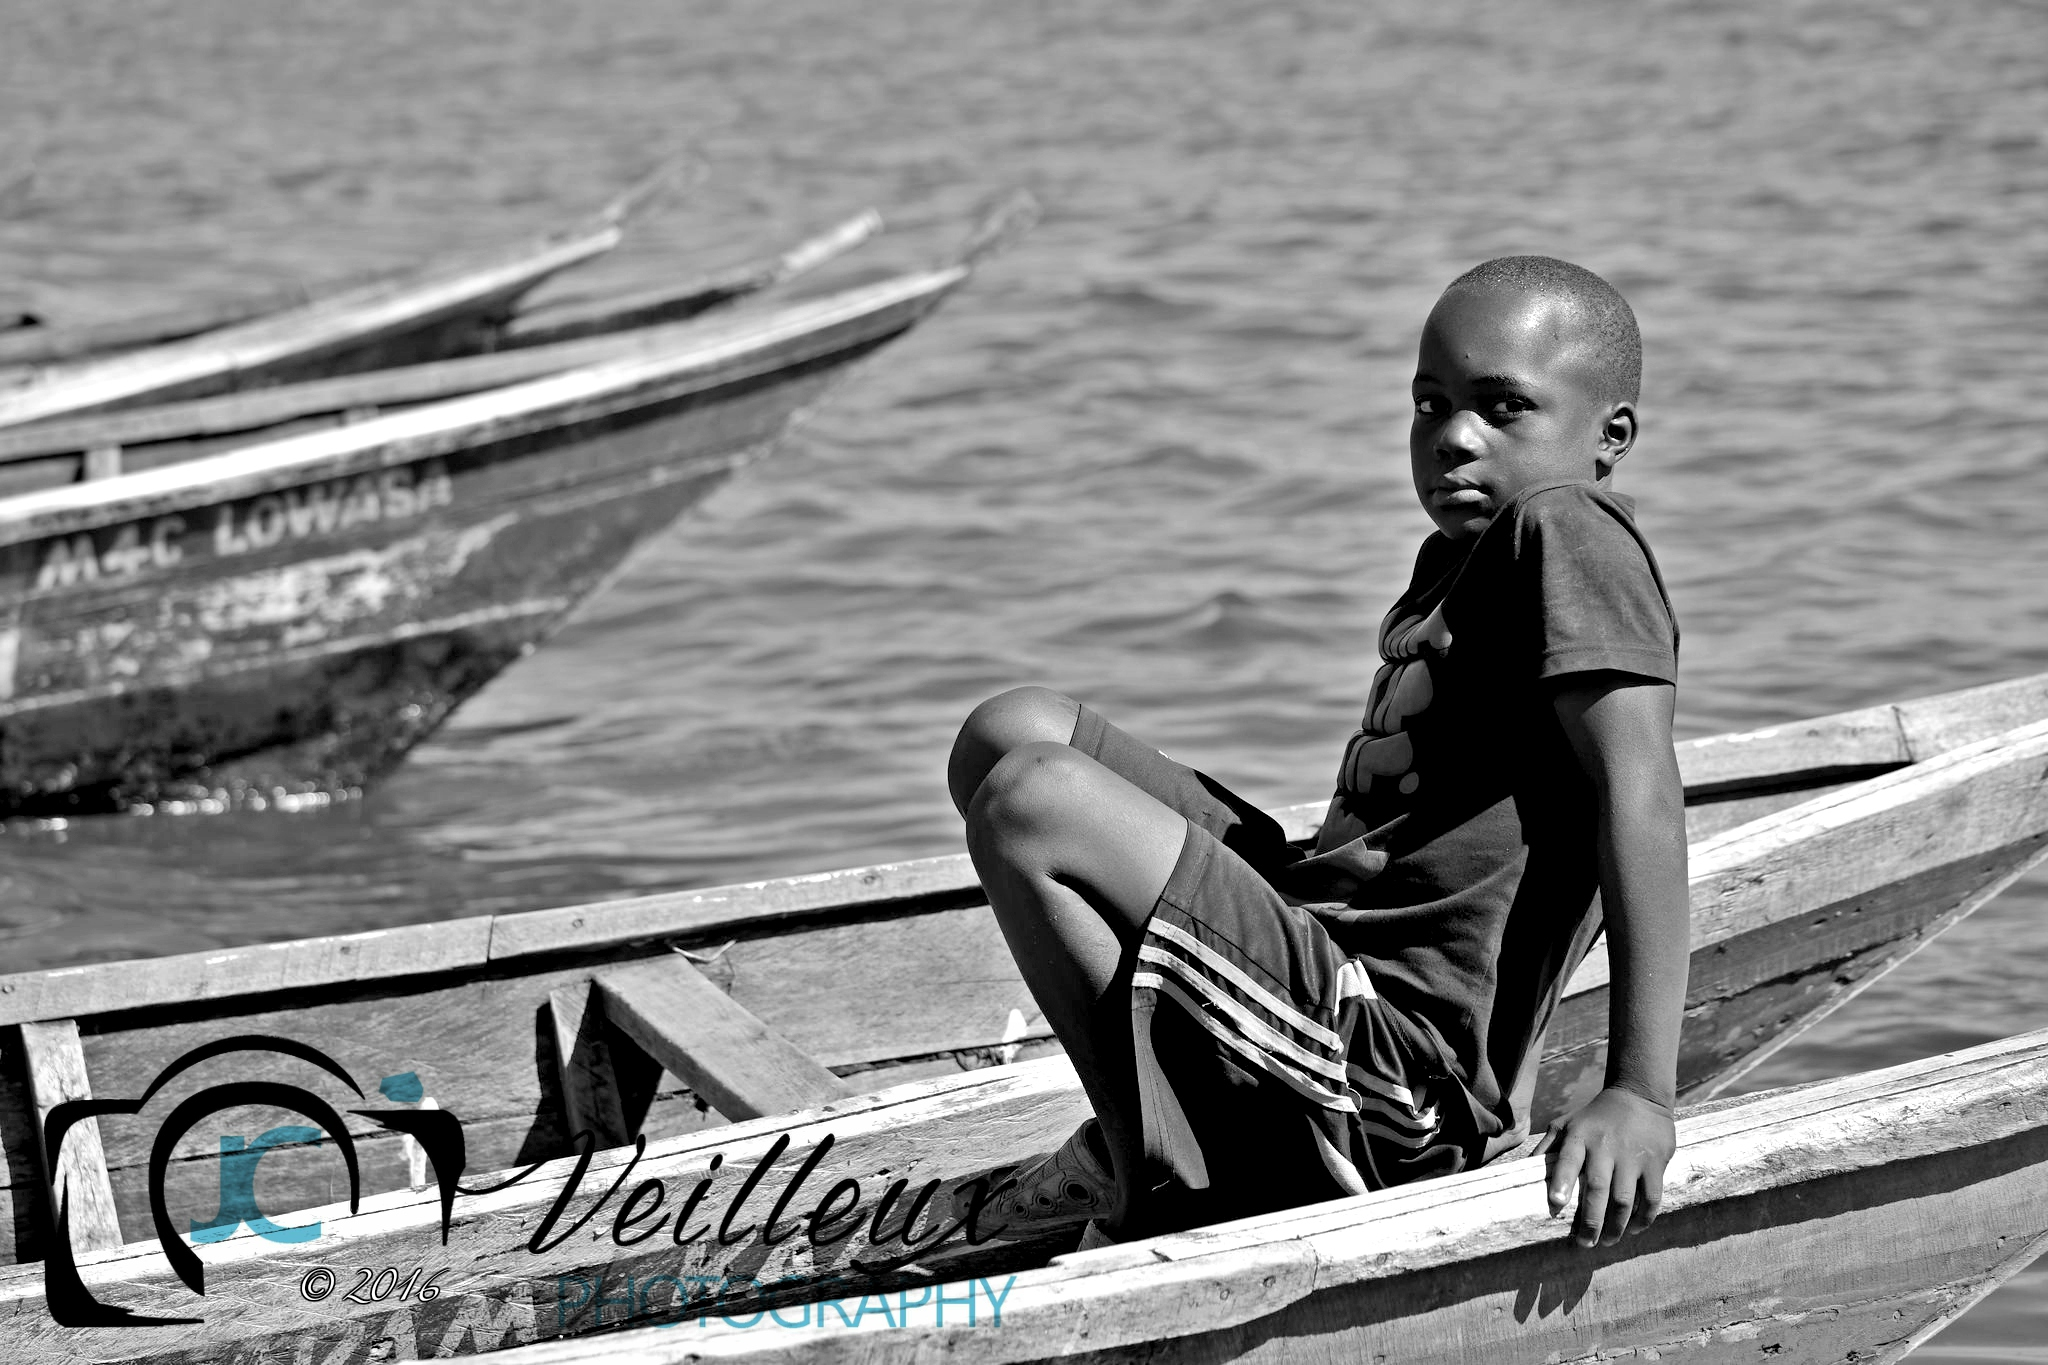 Lake Victoria Swimmer No. 4